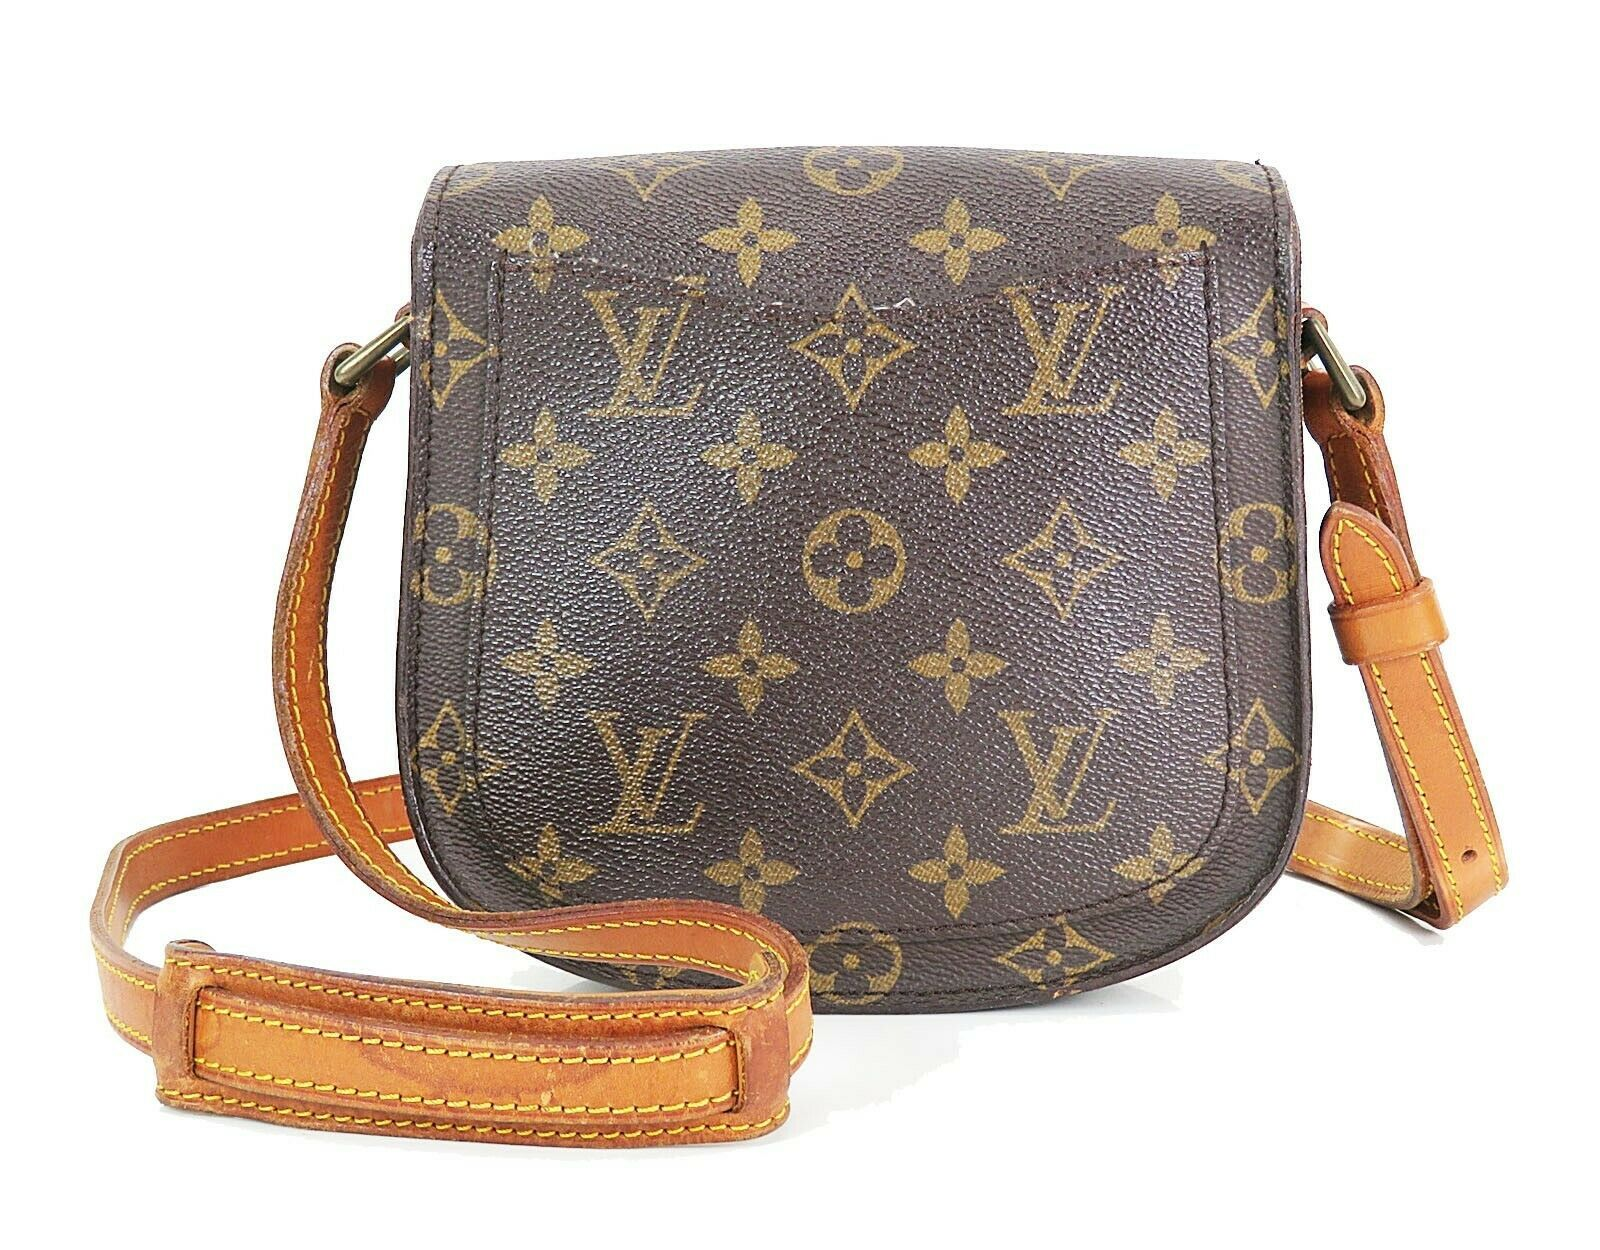 Authentic LOUIS VUITTON Saint Cloud PM Monogram Shoulder Bag #35015 image 3